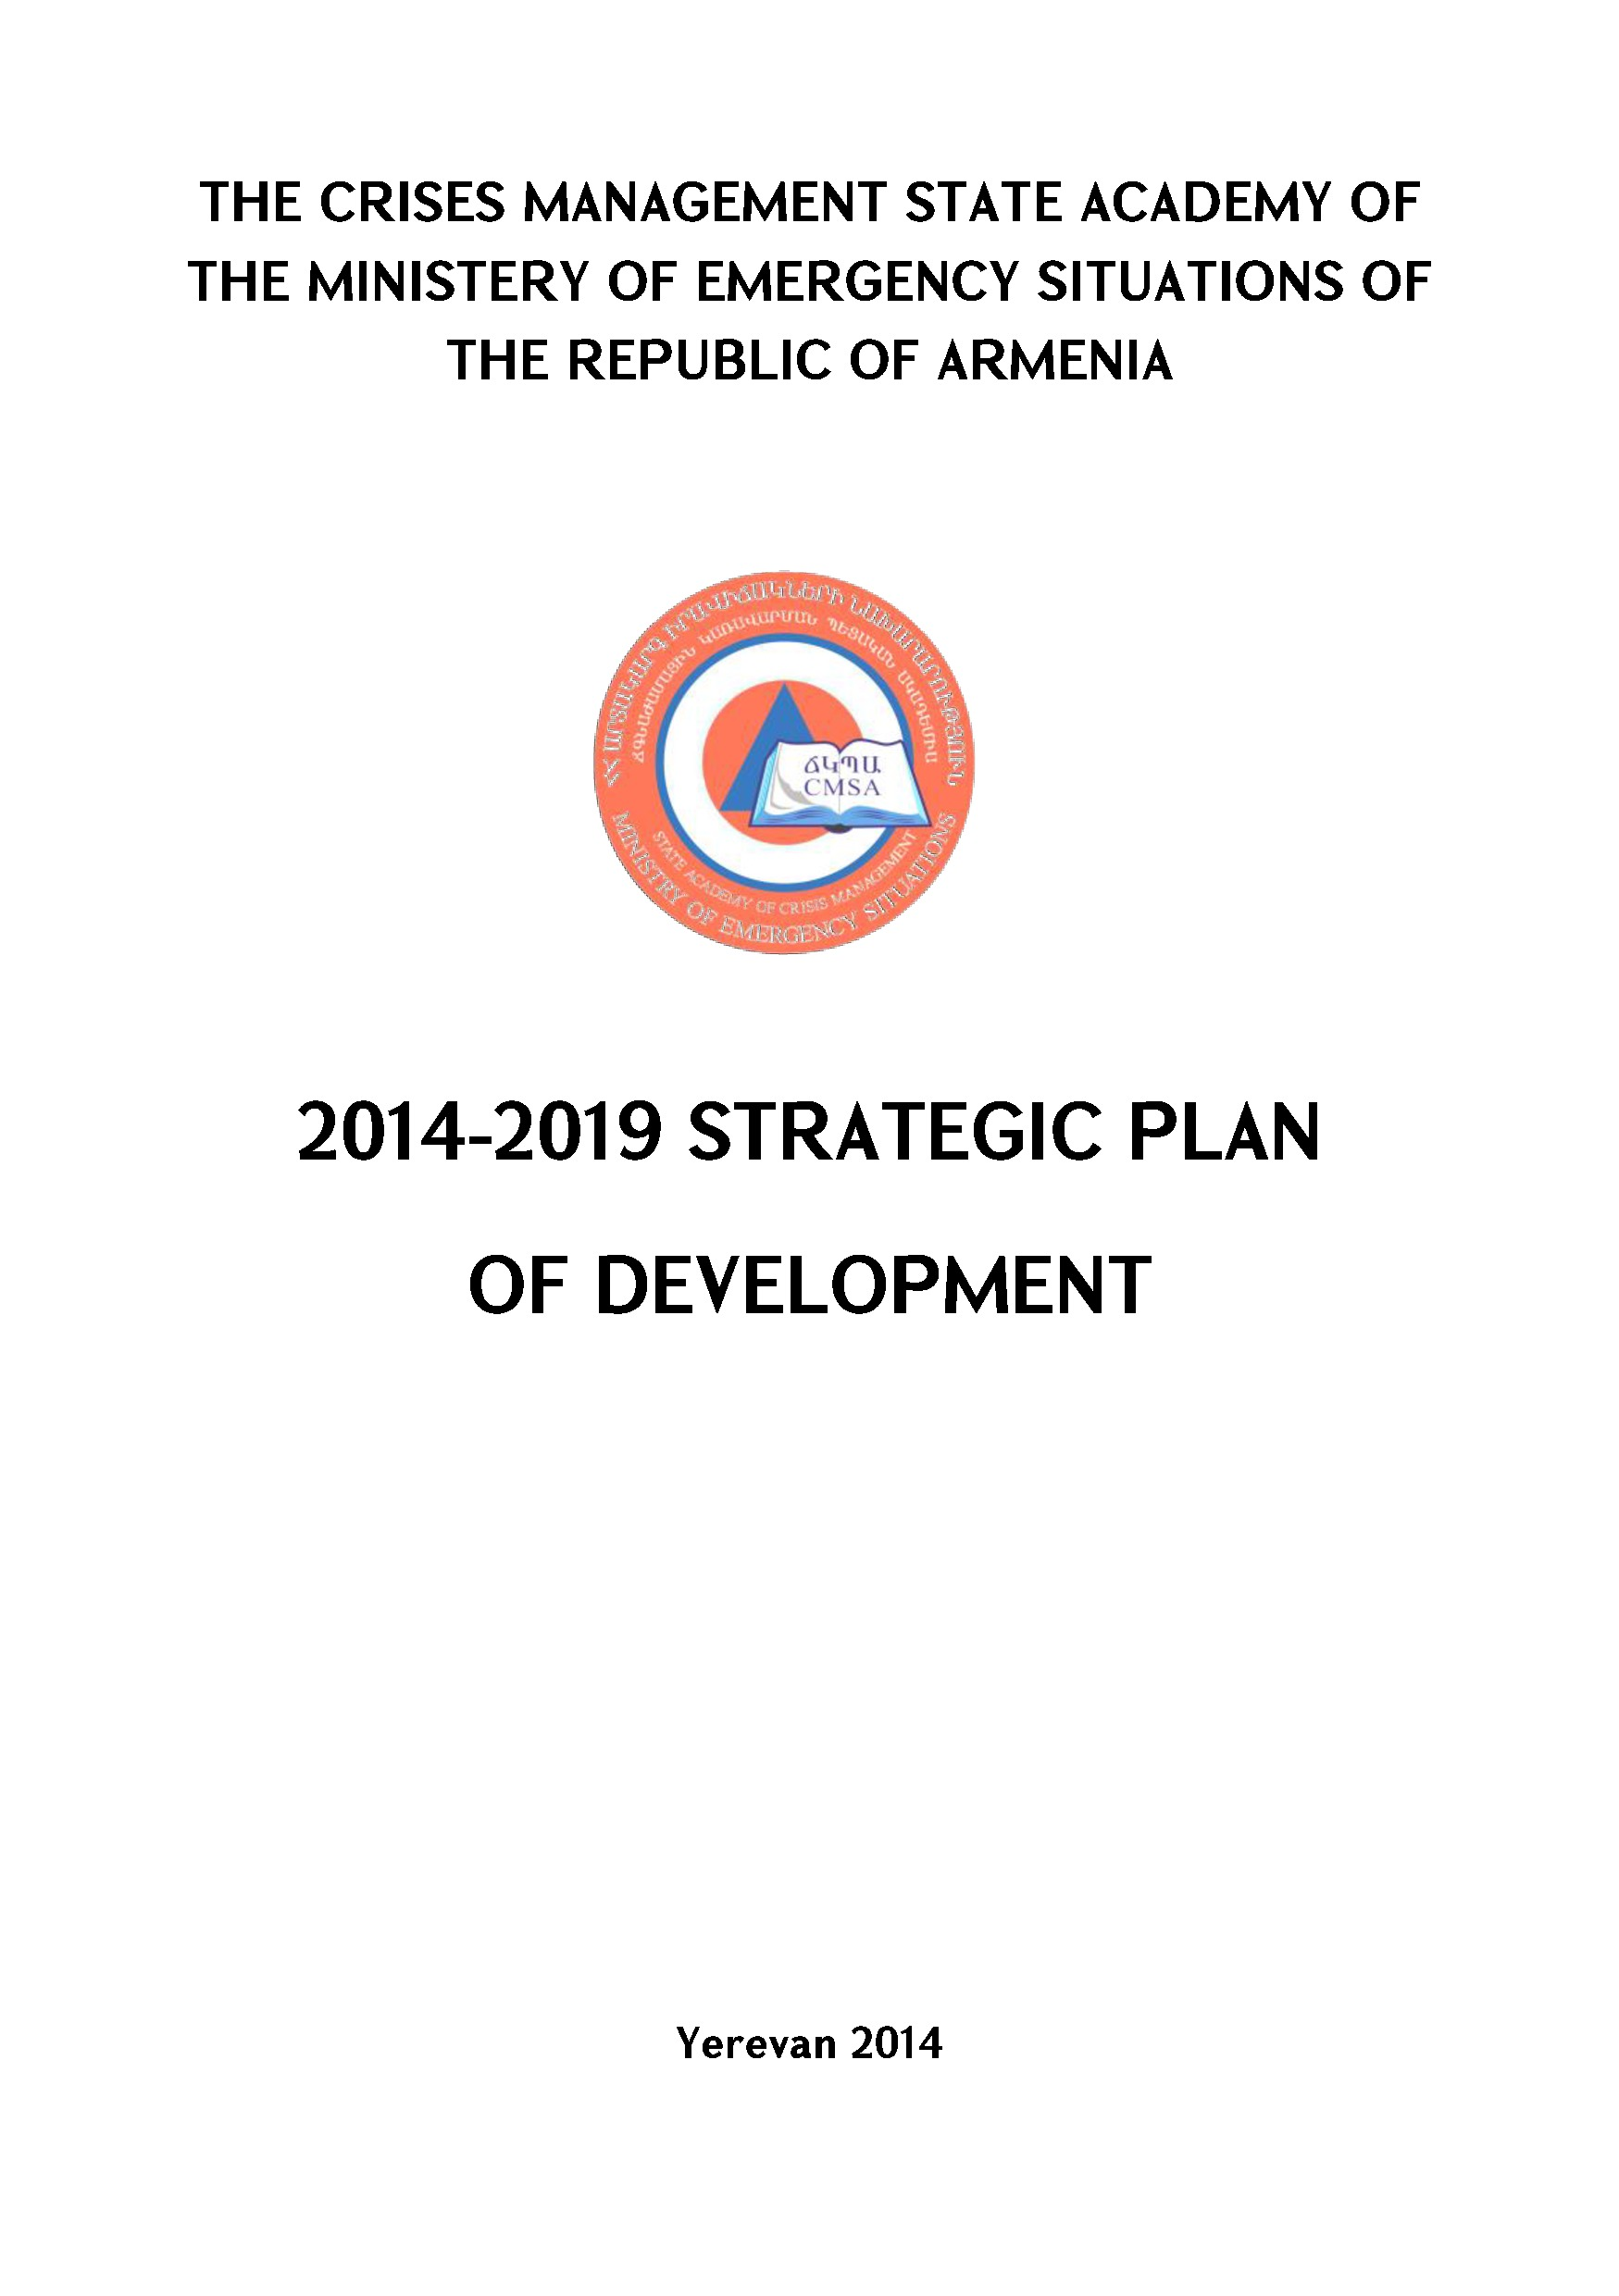 2014-2019 STRATEGIC PLAN OF DEVELOPMENT